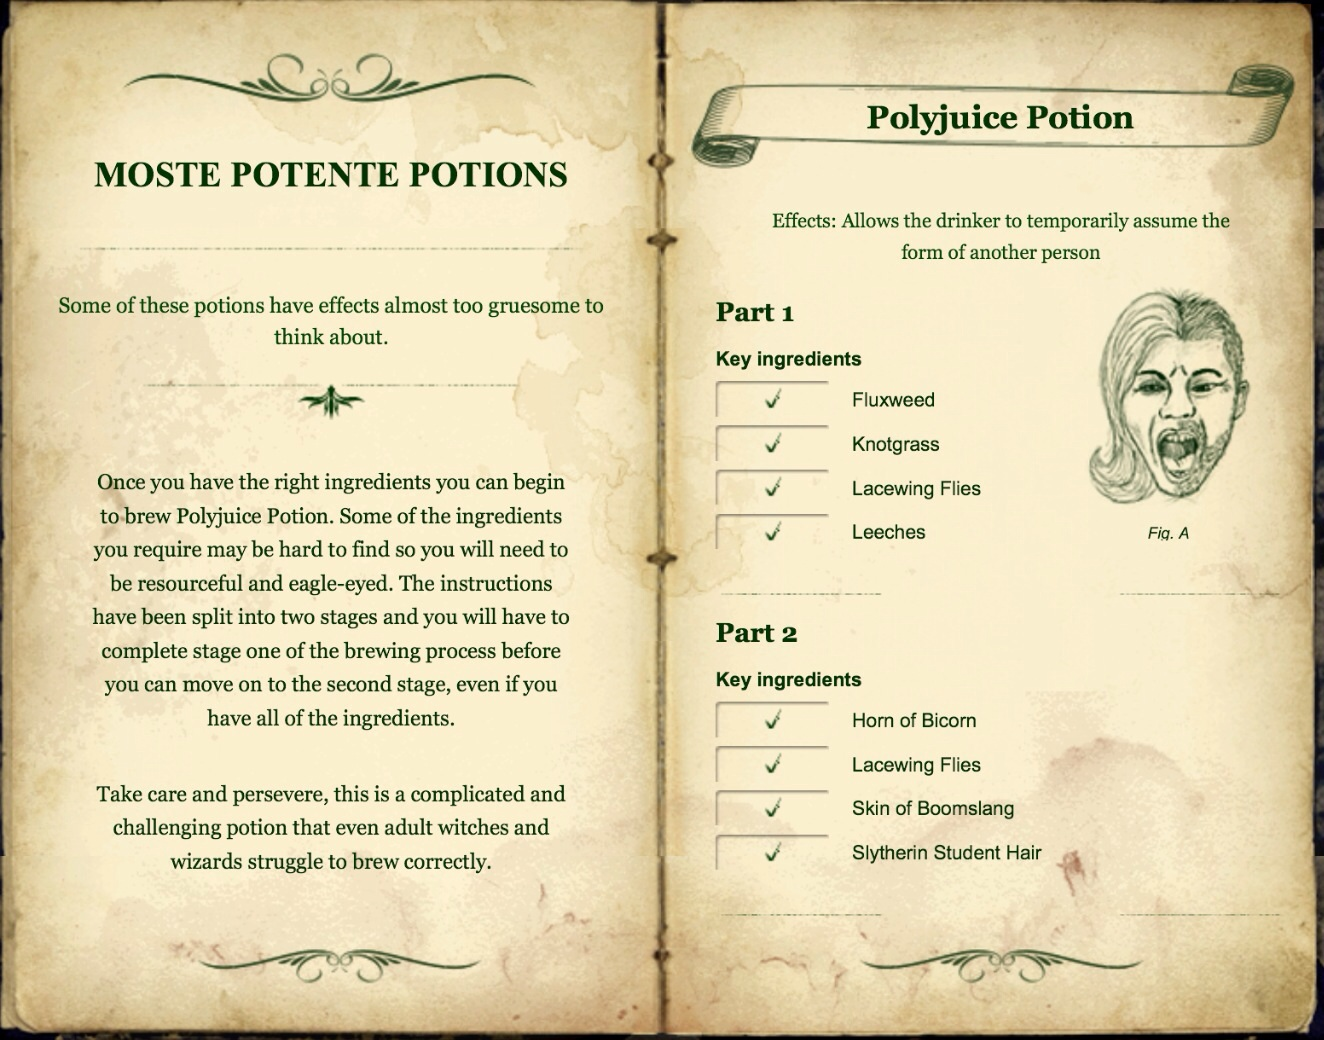 image relating to Harry Potter Potion Book Printable named Moste Potente Potions Pottermore Wiki FANDOM run as a result of